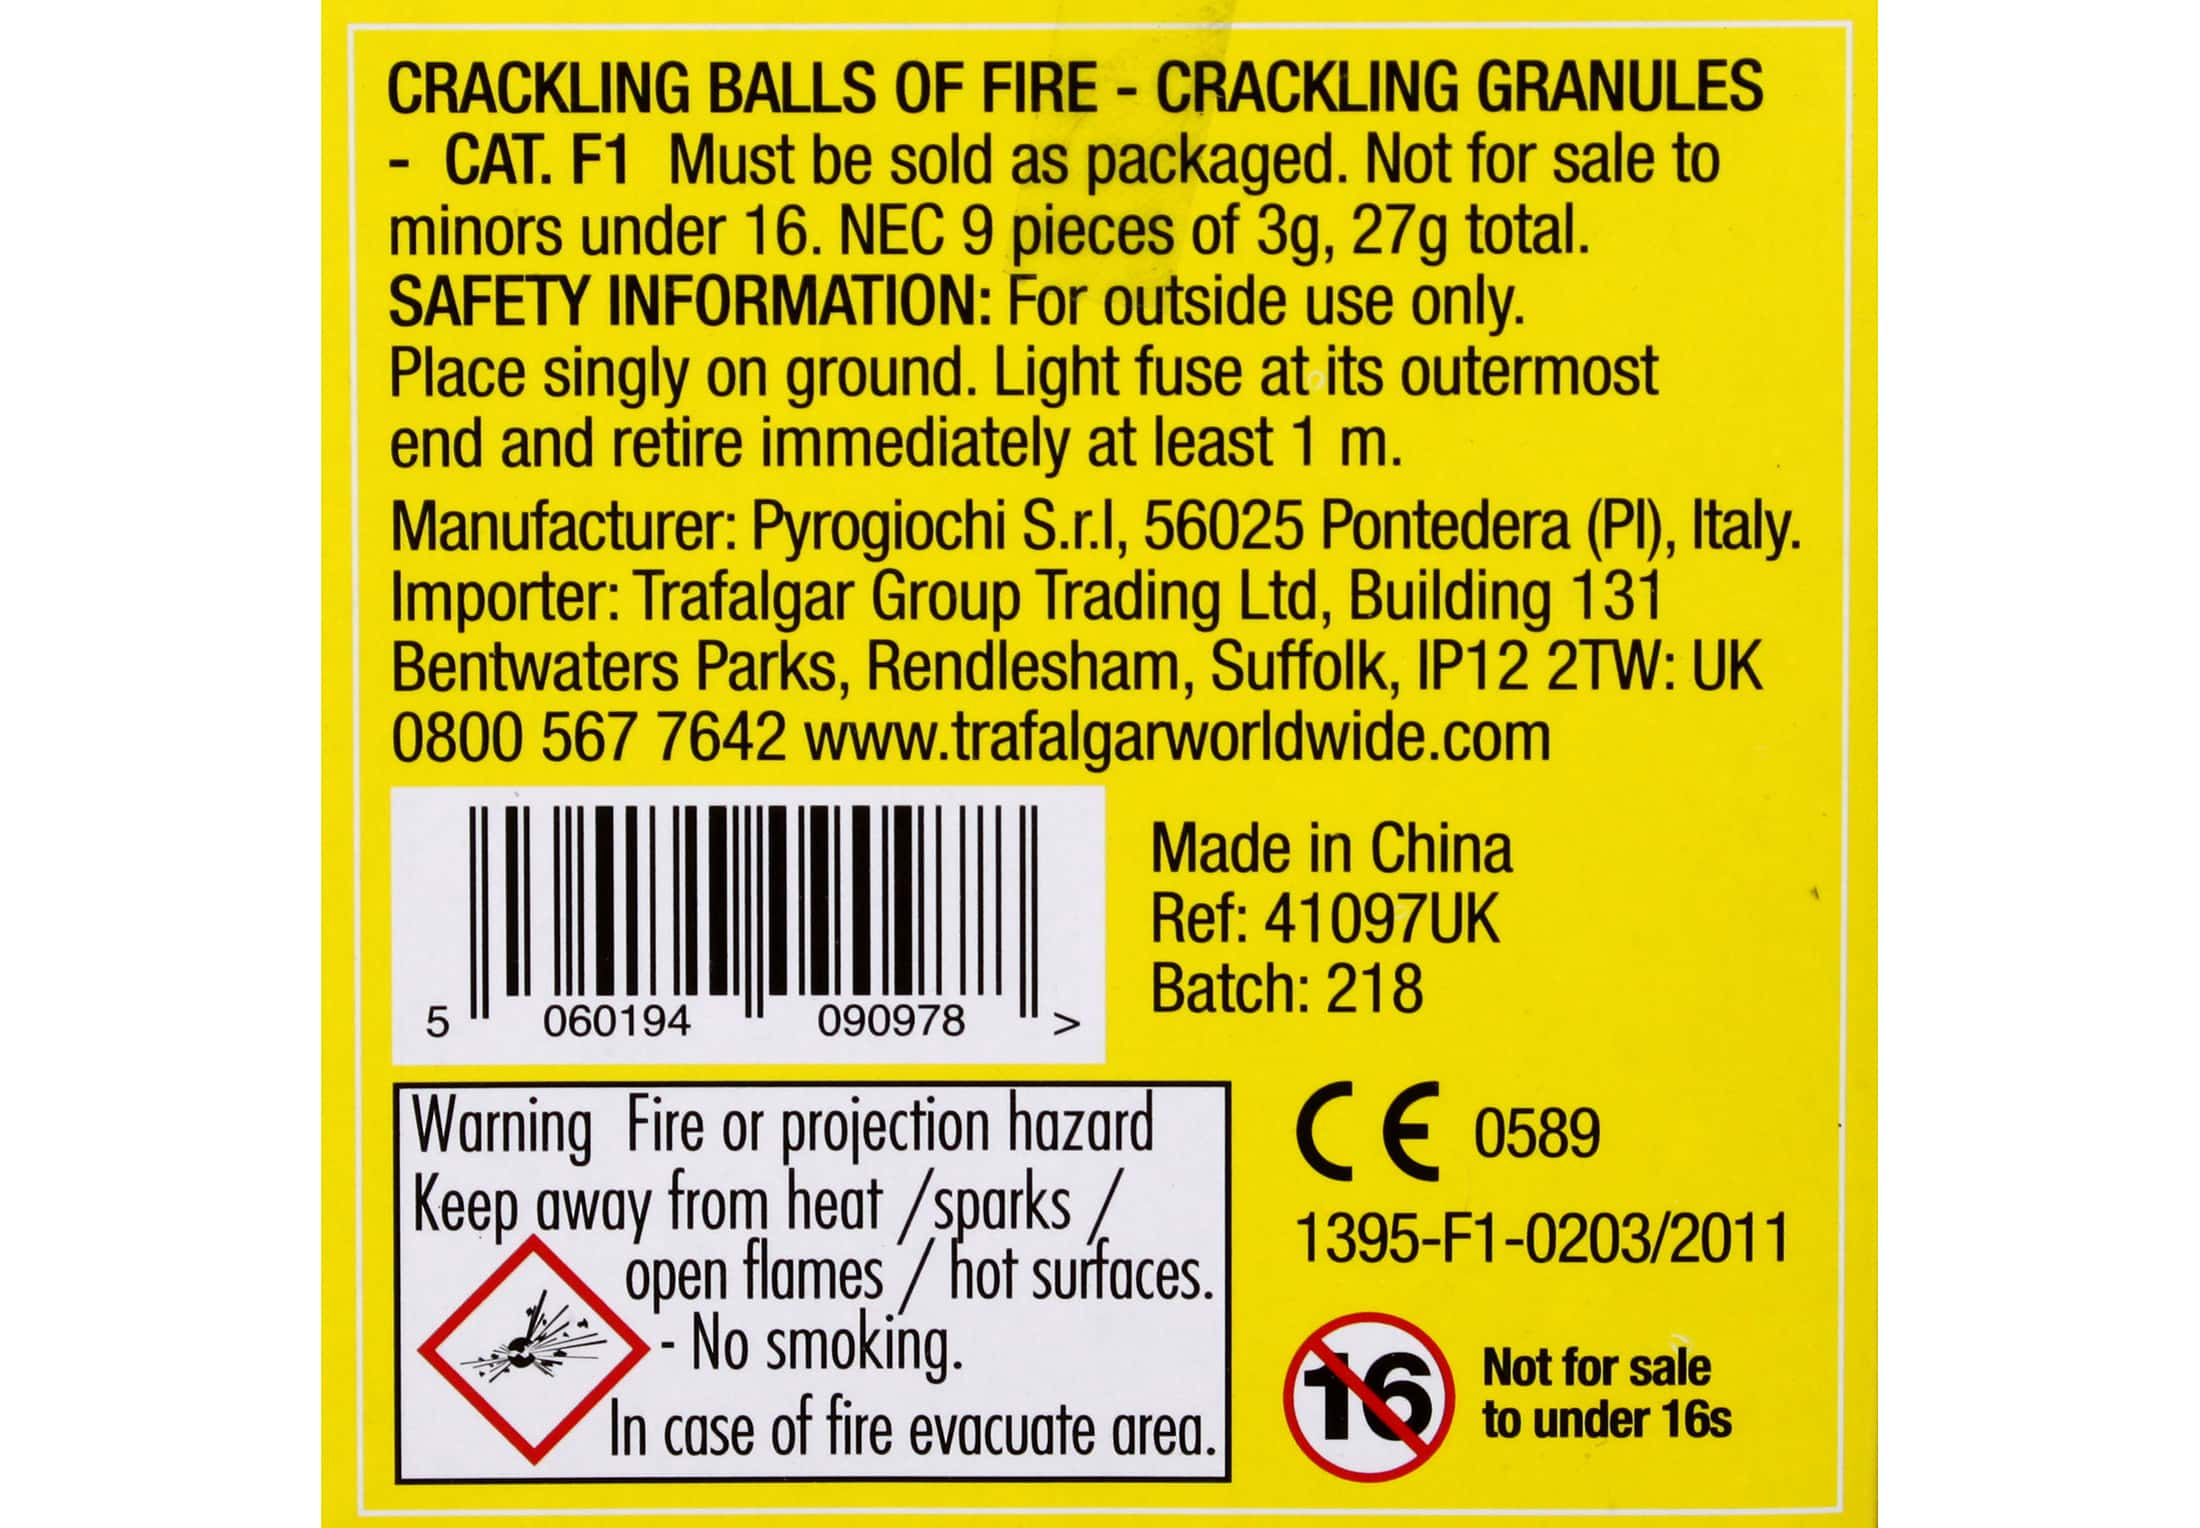 Category F1 fireworks label